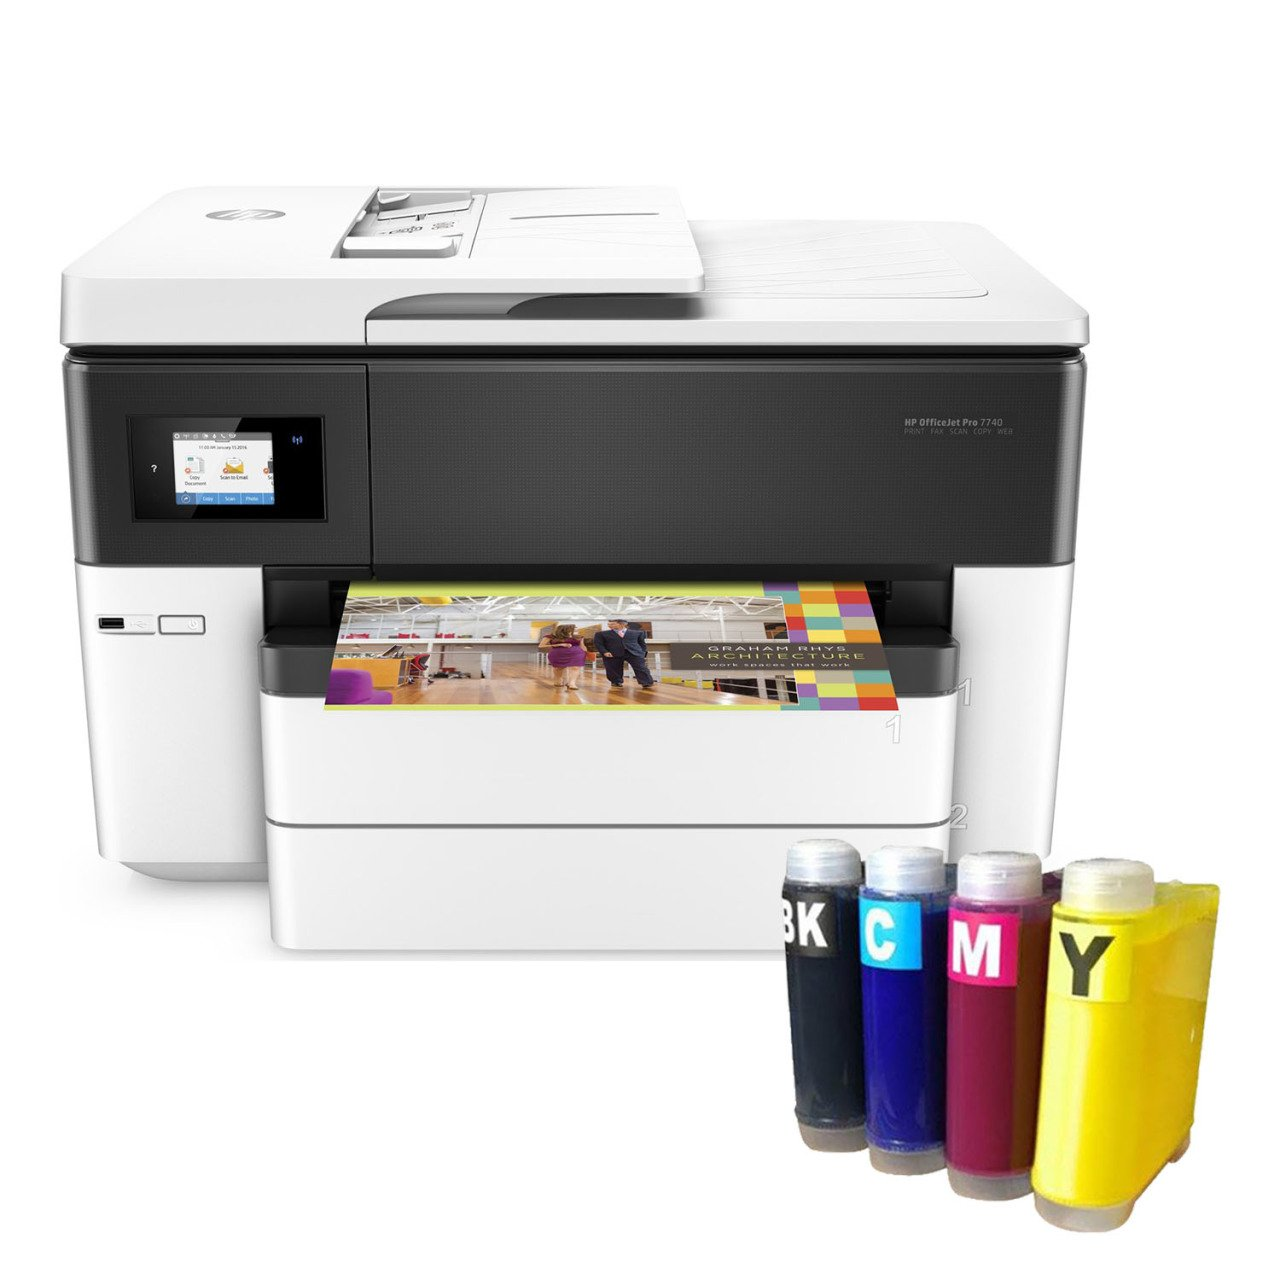 US $46.46 46% OFFFOR HP Officejet Pro 7746 Copier + Fax + Scanner + Wi Fi  + Airprint + A46 Printer G46J468A and ending Cartridge SystemInk Cartridges